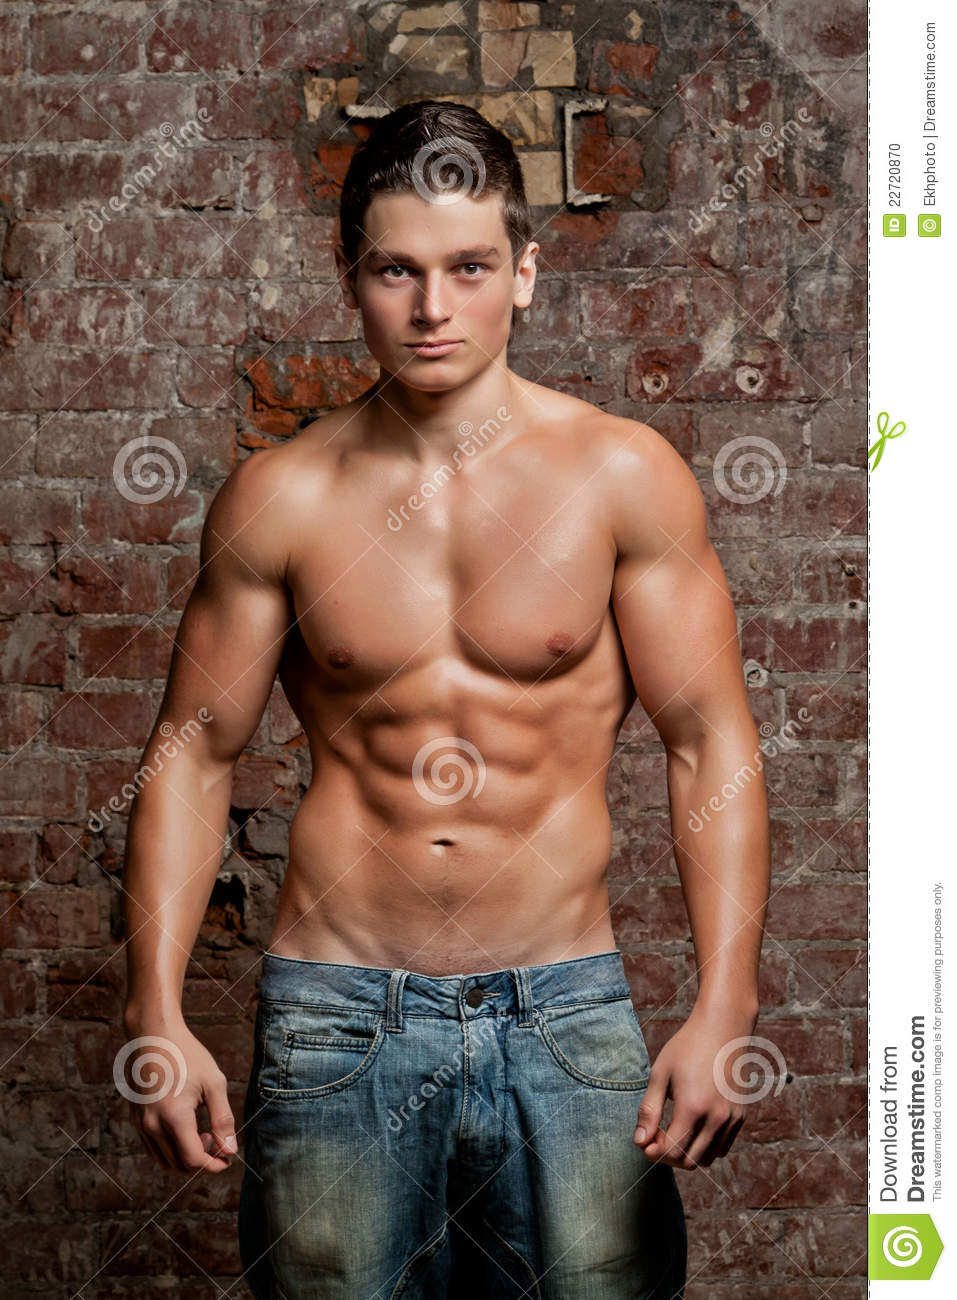 Muscular Young Naked Man Posing In Blue Jeans Stock Photo